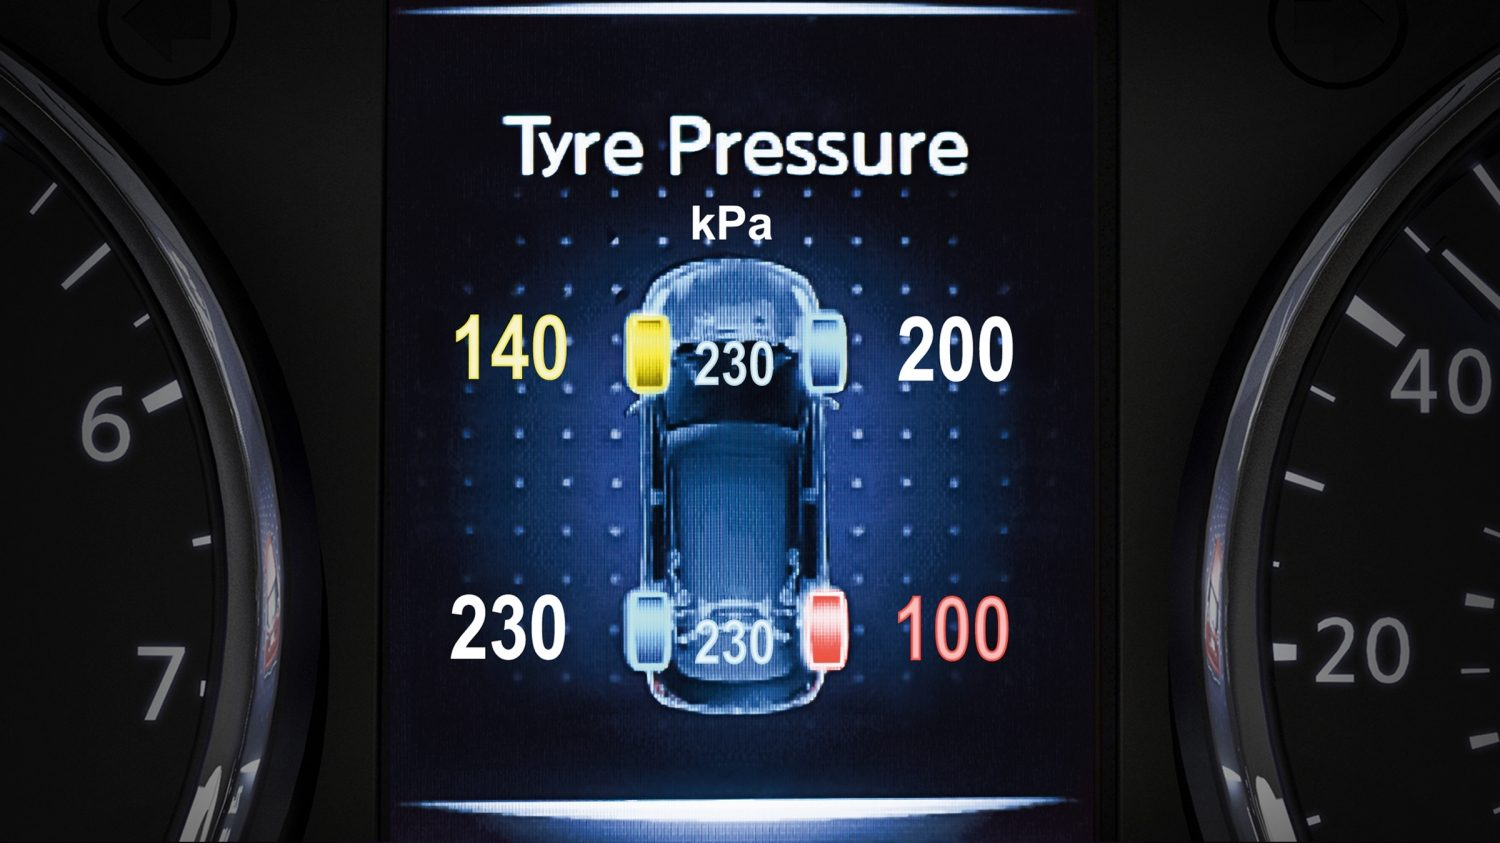 X-Trail TFT screen - Tyre Pressure Monitoring System